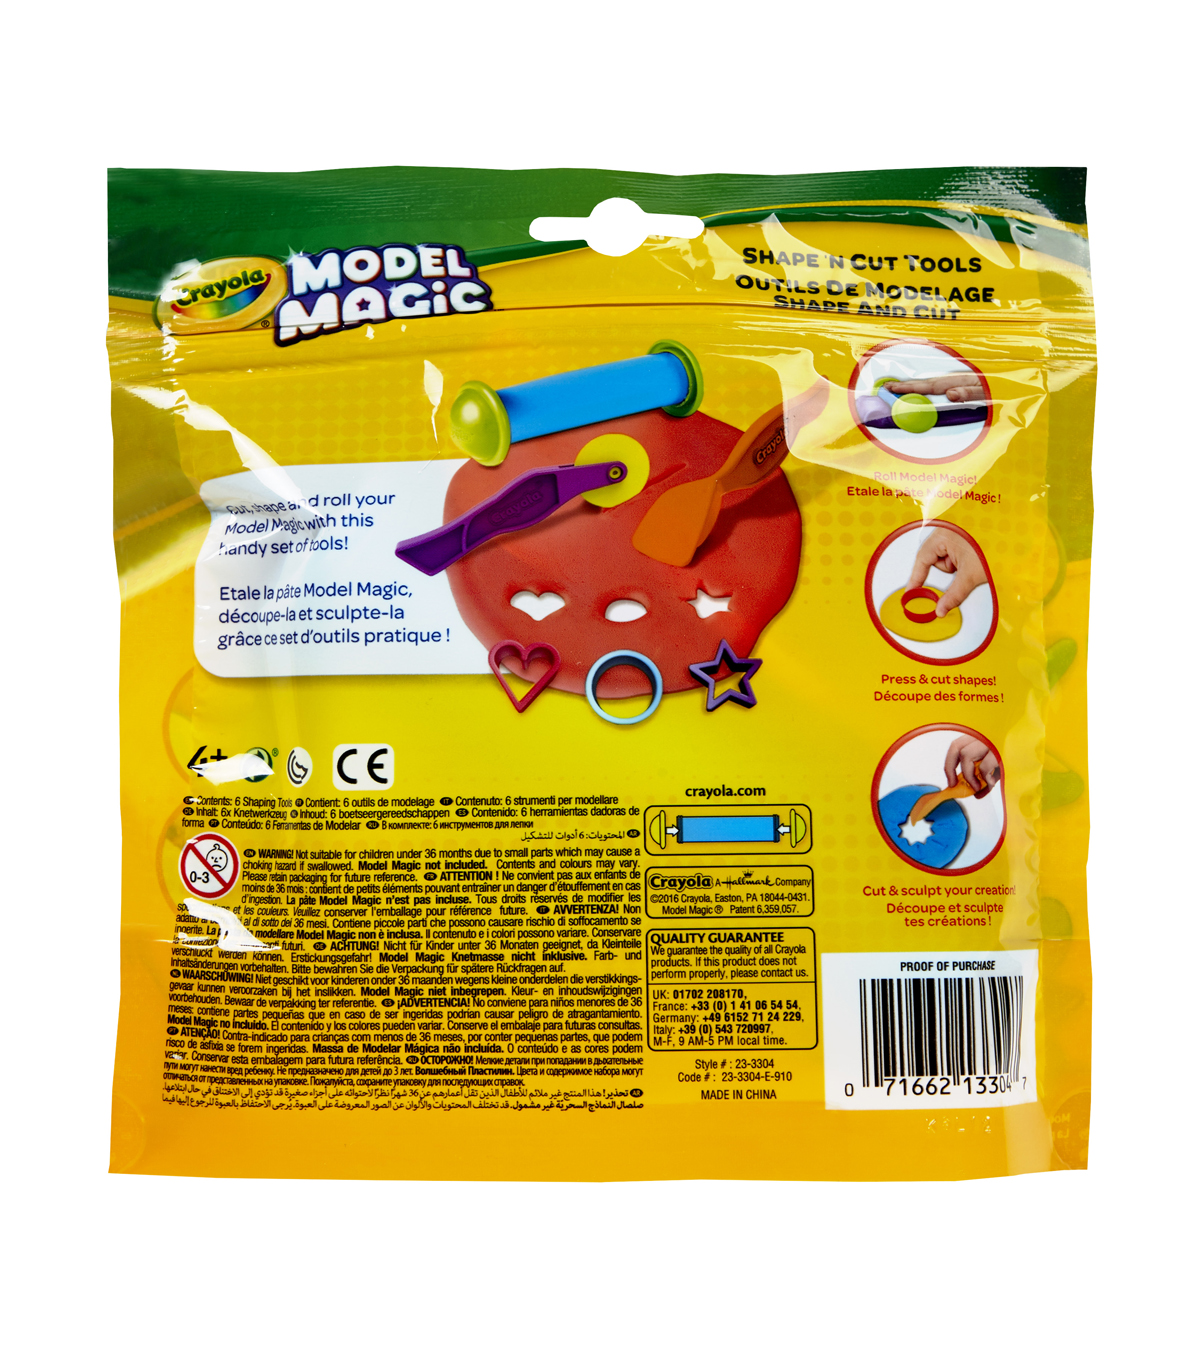 Crayola Model Magic Shape \u0027N Cut Tools 6/Pkg